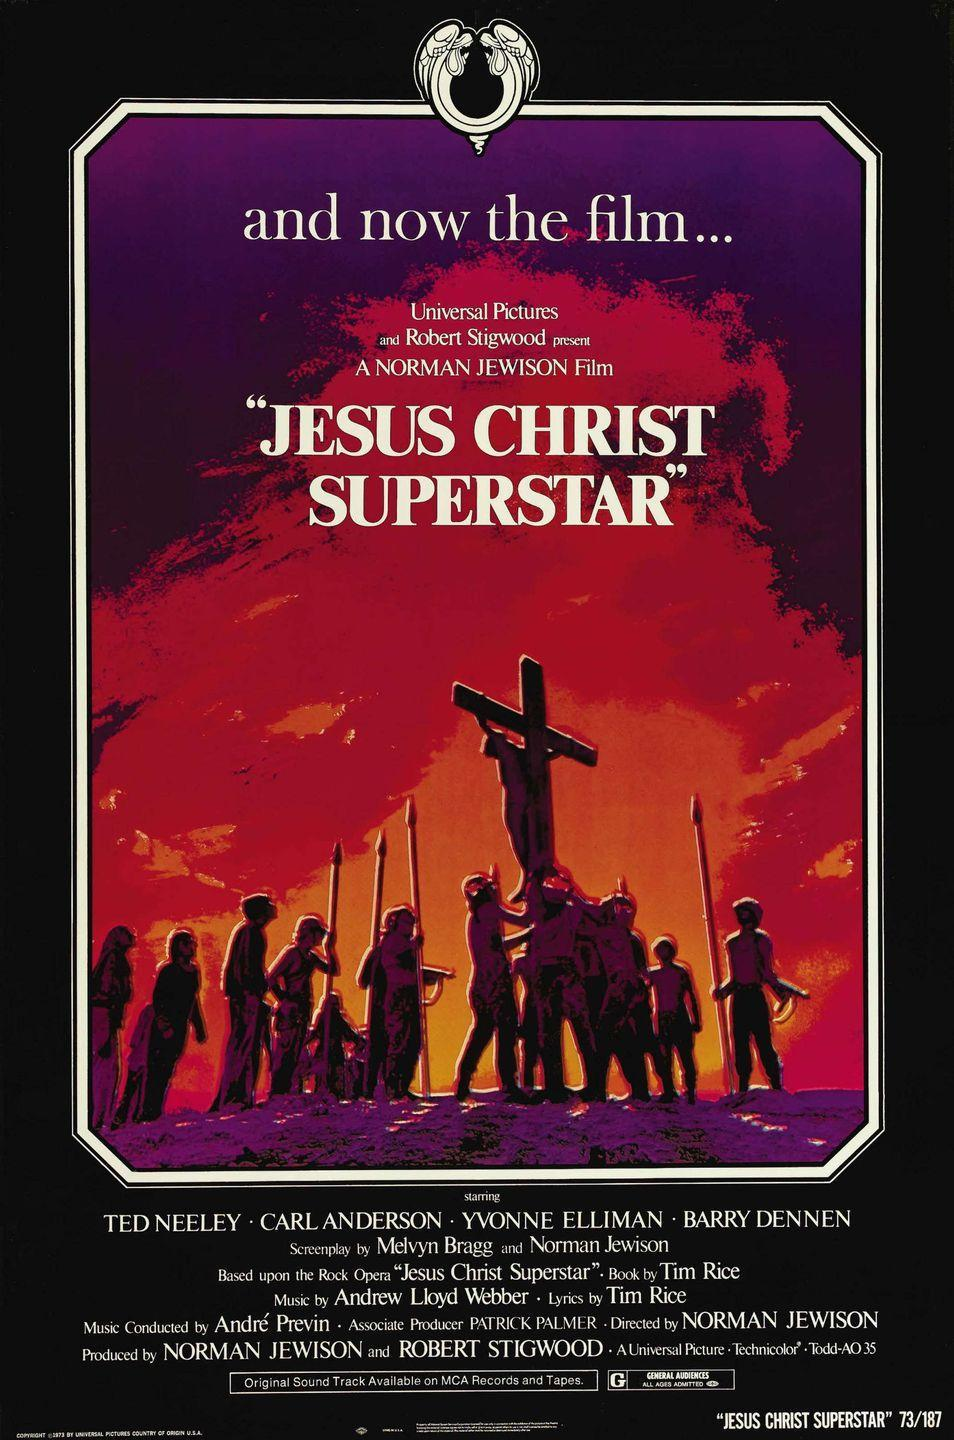 """<p>Andrew Lloyd Webber's retelling of the story of Jesus in his final days set to a rock score is admittedly not an easy sell. You'll probably change your tune sometime in the middle of """"Heaven on Their Minds,"""" however. </p><p><a class=""""link rapid-noclick-resp"""" href=""""https://www.amazon.com/Jesus-Christ-Superstar-Ted-Neeley/dp/B0036DJLJY/ref=sr_1_4?tag=syn-yahoo-20&ascsubtag=%5Bartid%7C10072.g.27734413%5Bsrc%7Cyahoo-us"""" rel=""""nofollow noopener"""" target=""""_blank"""" data-ylk=""""slk:WATCH NOW"""">WATCH NOW</a></p>"""